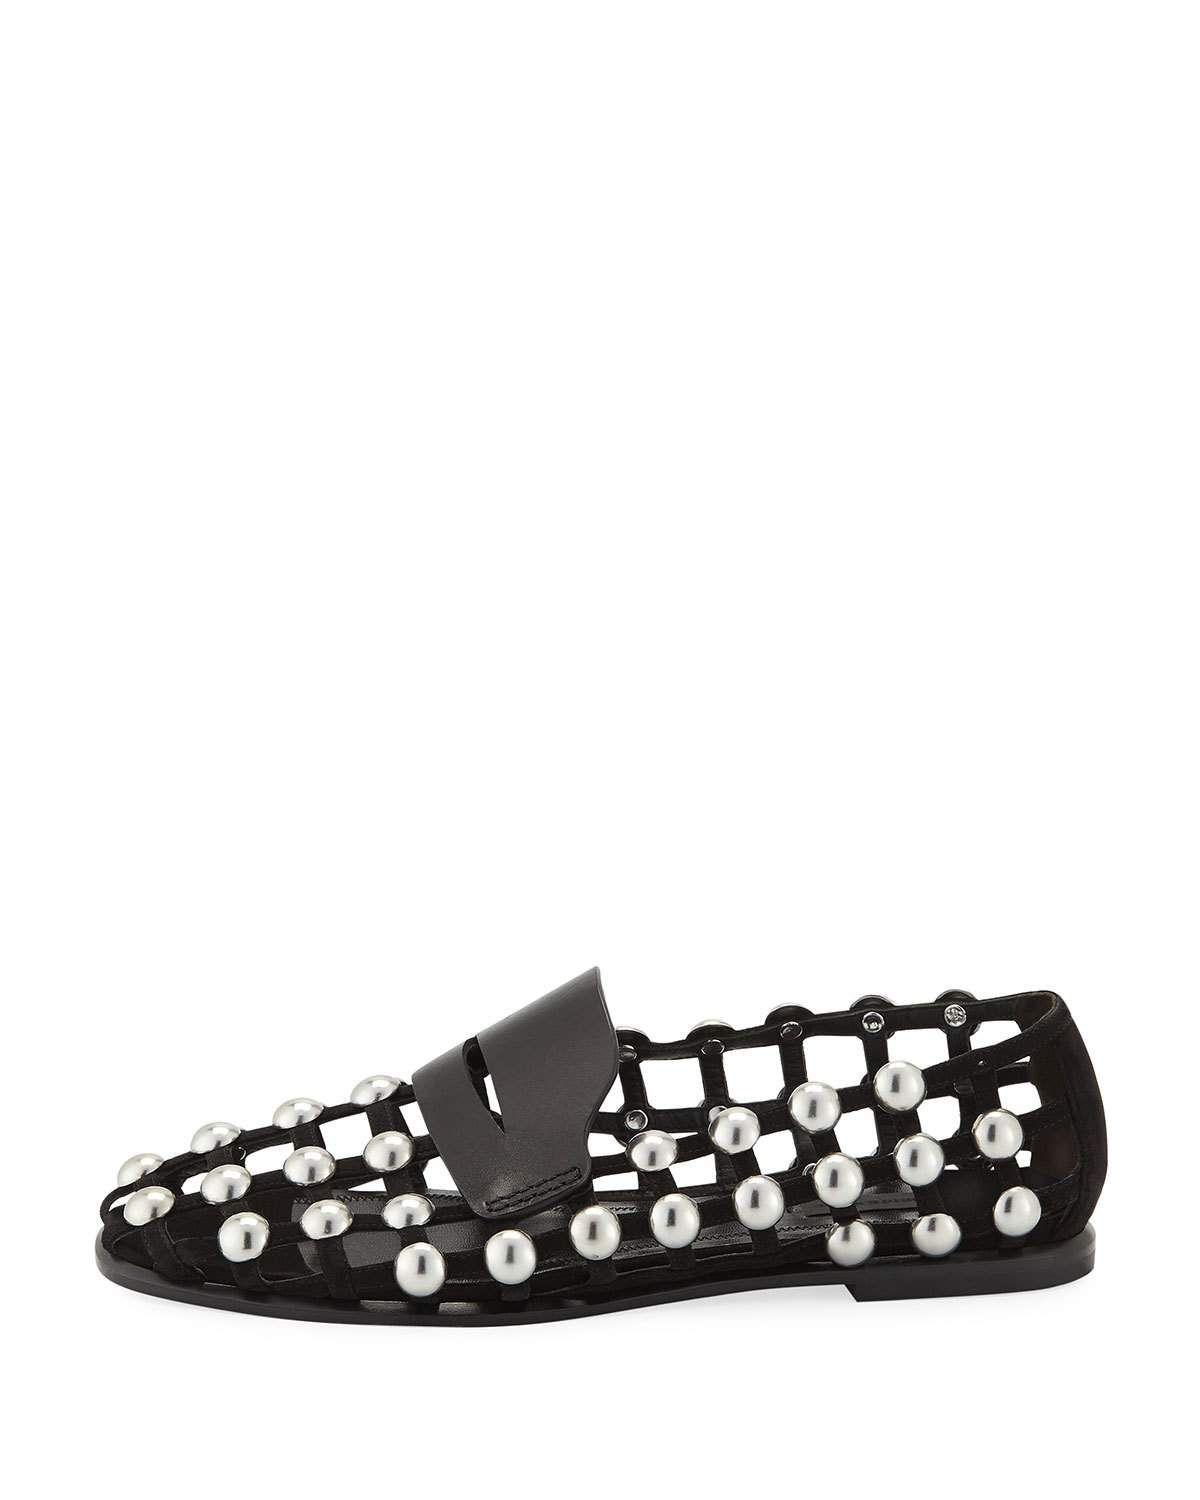 87916d9e951 Alexander Wang Sam Studded Suede Cage Loafers